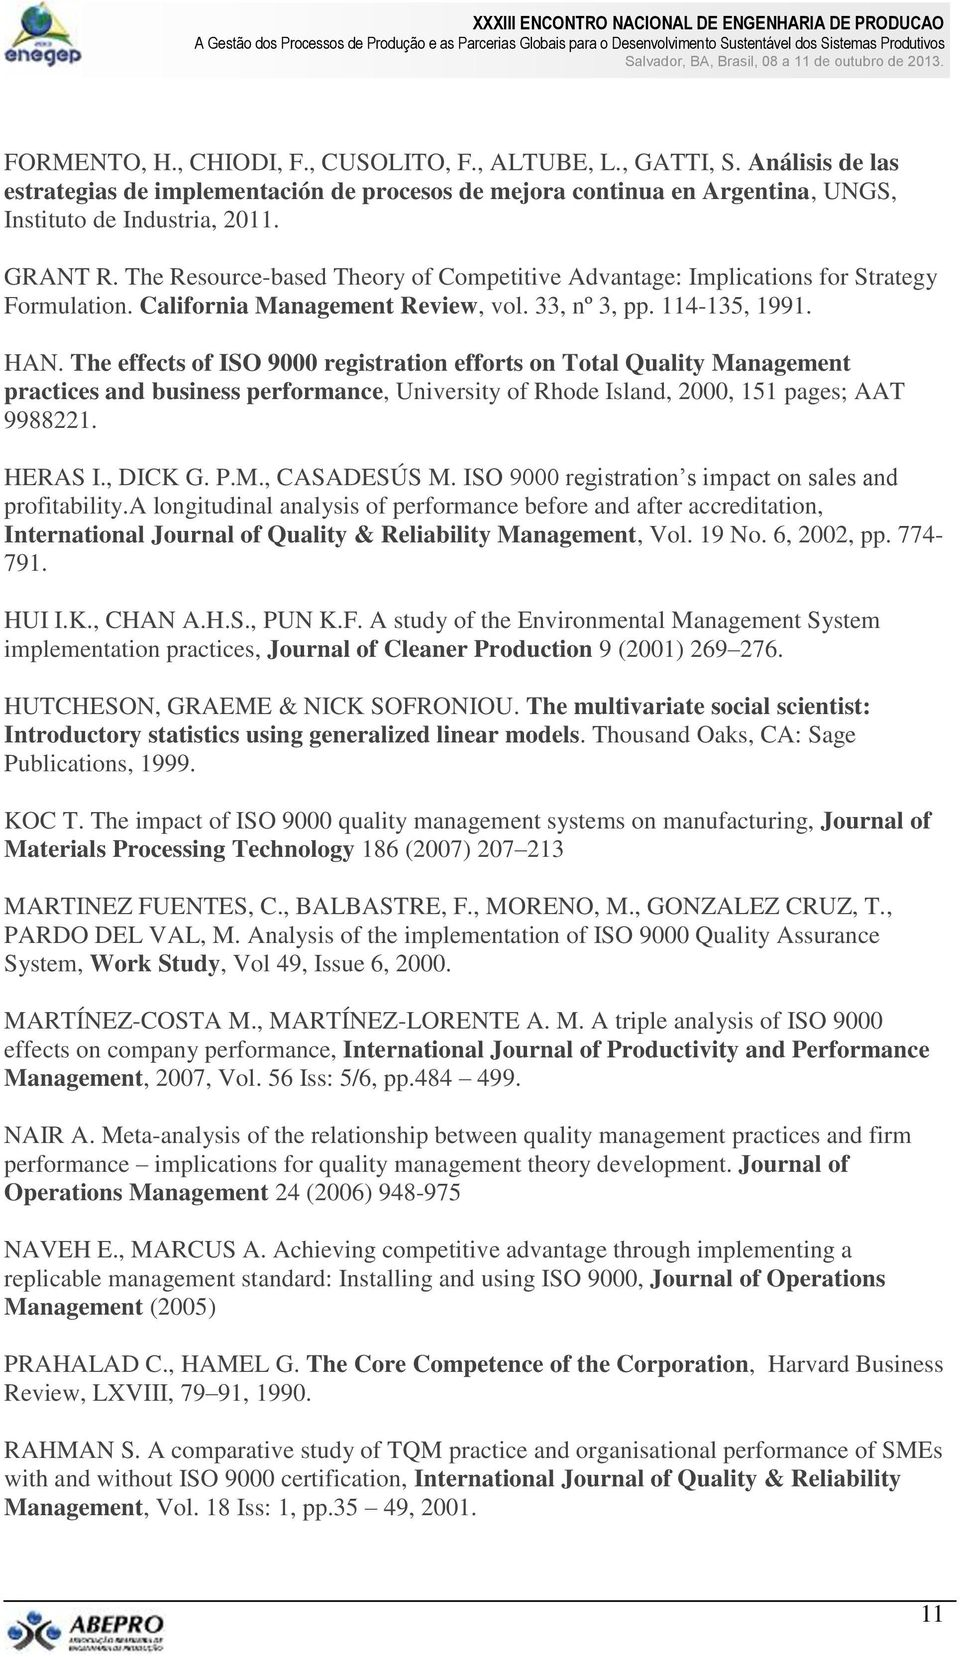 The effects of ISO 9000 registration efforts on Total Quality Management practices and business performance, University of Rhode Island, 2000, 151 pages; AAT 9988221. HERAS I., DICK G. P.M., CASADESÚS M.